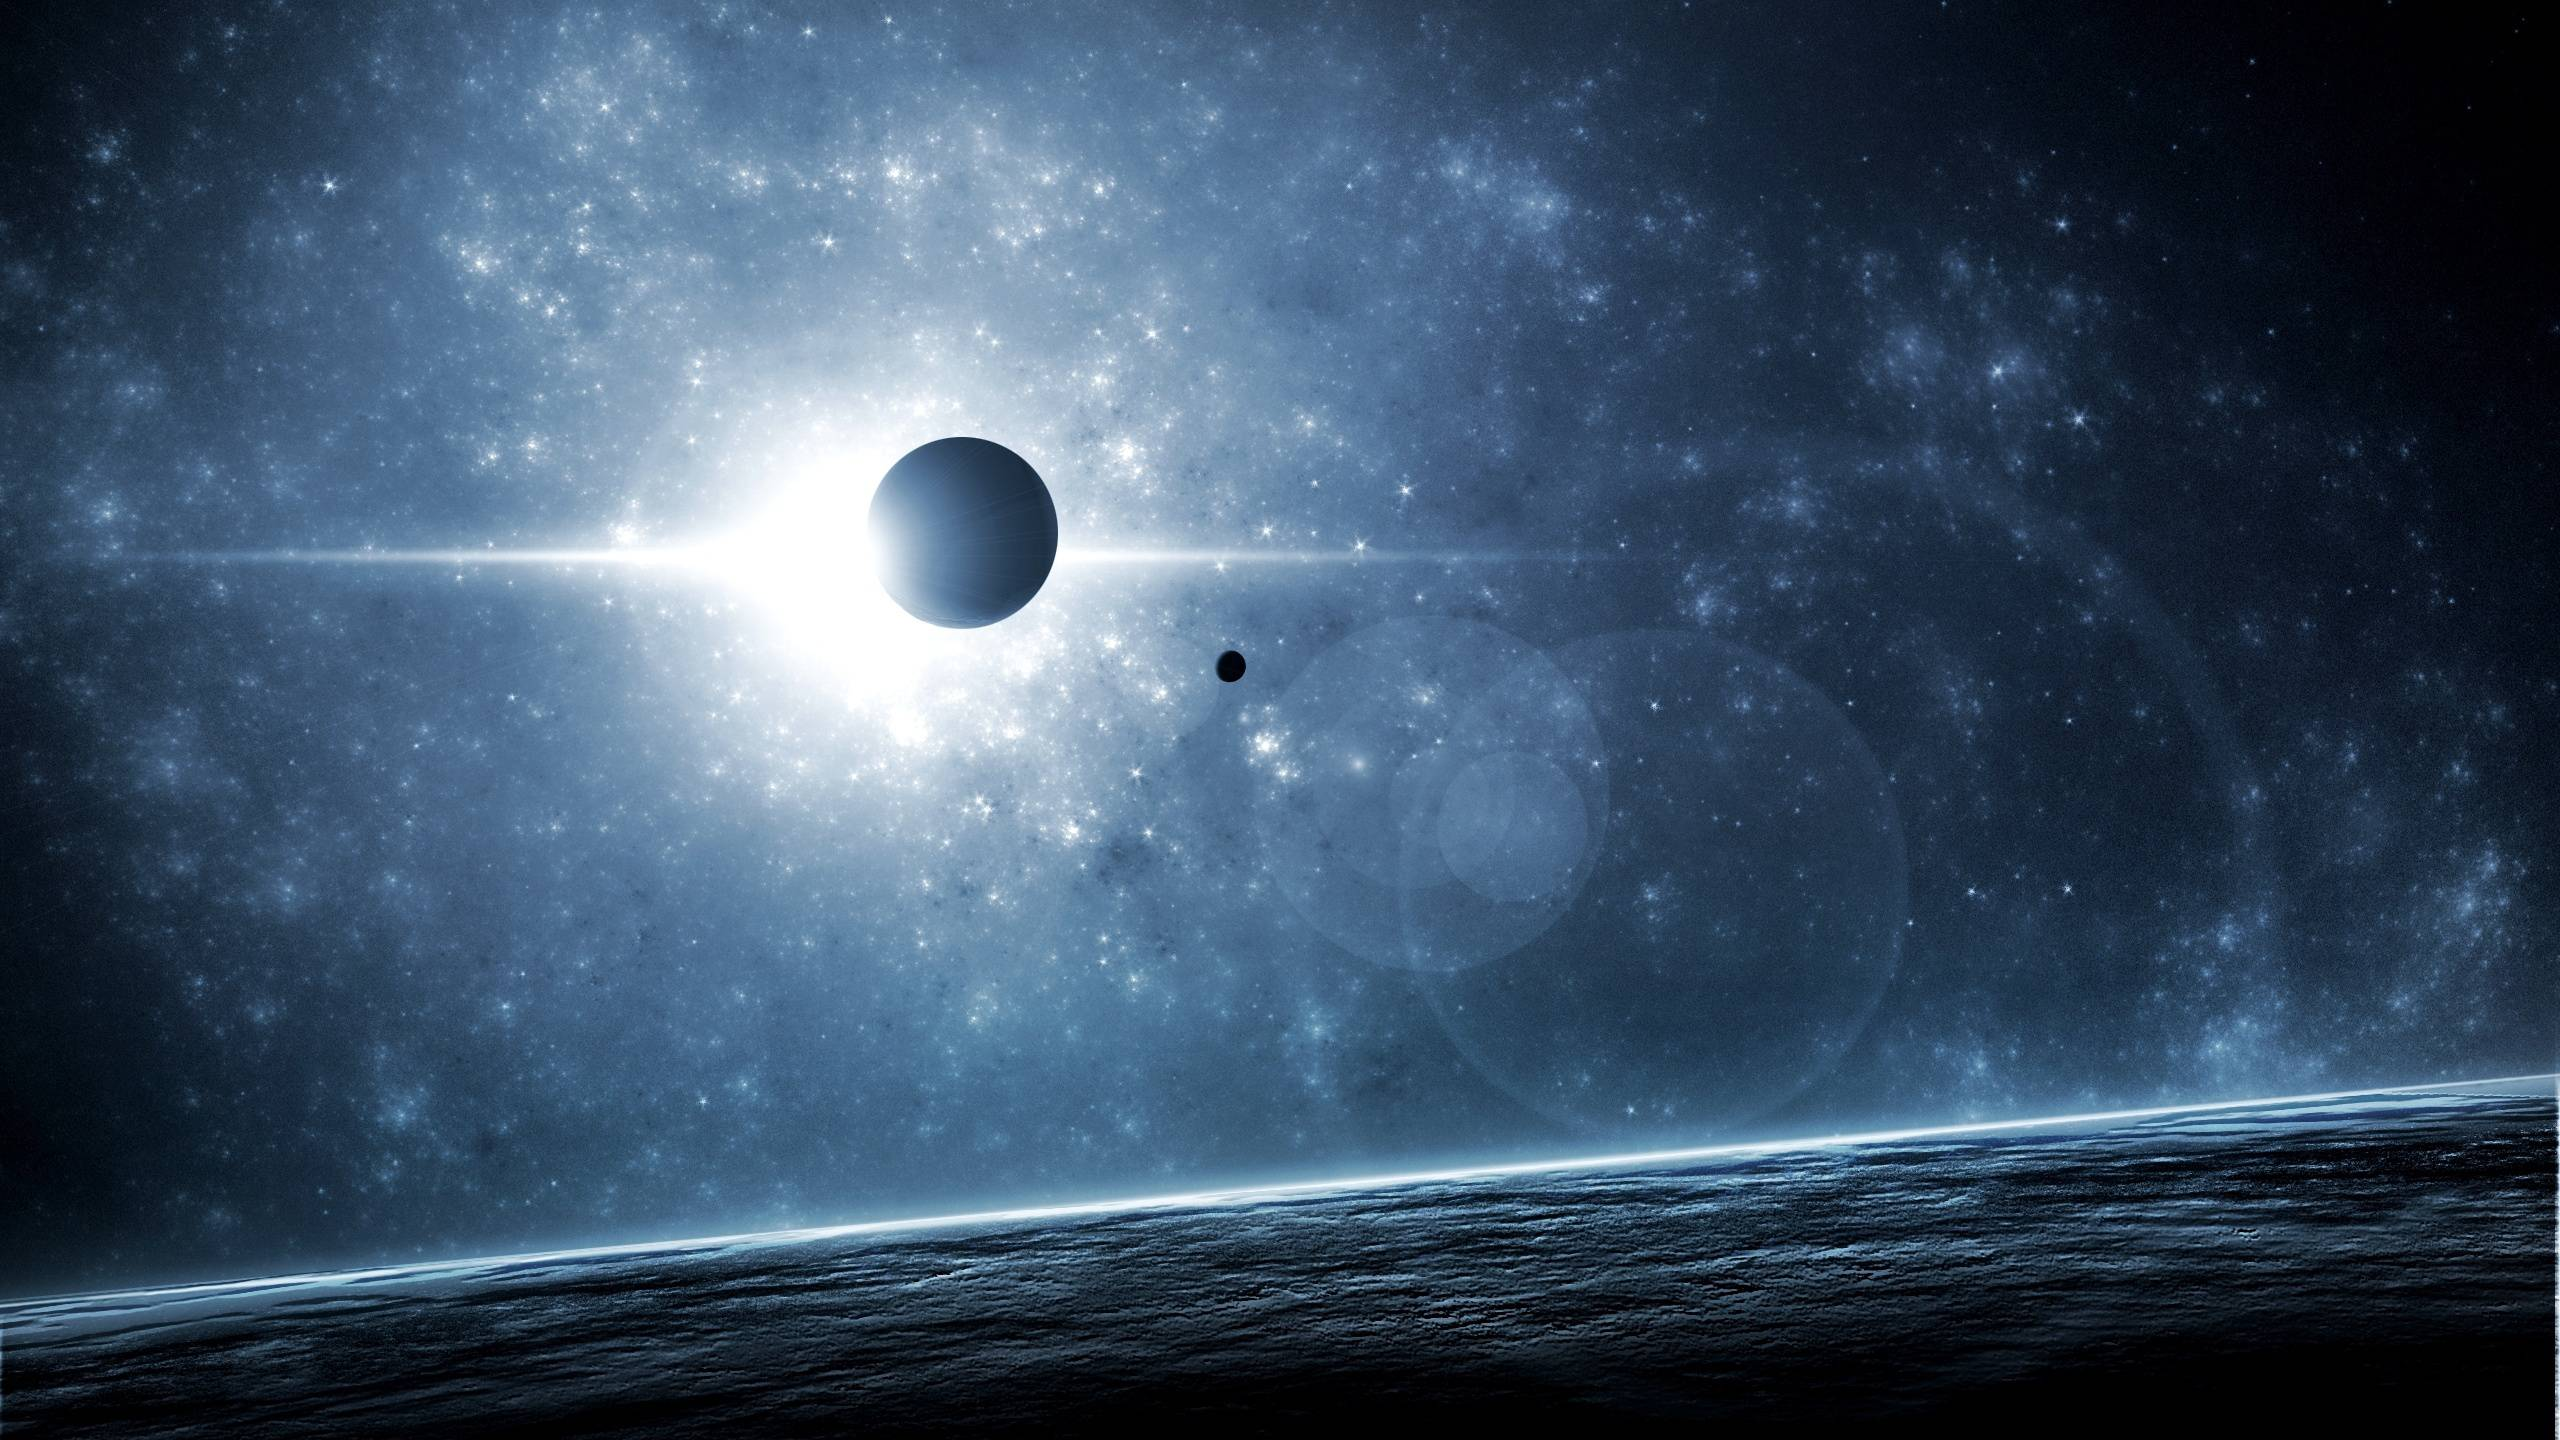 Eclipse Backgrounds Download 2560x1440